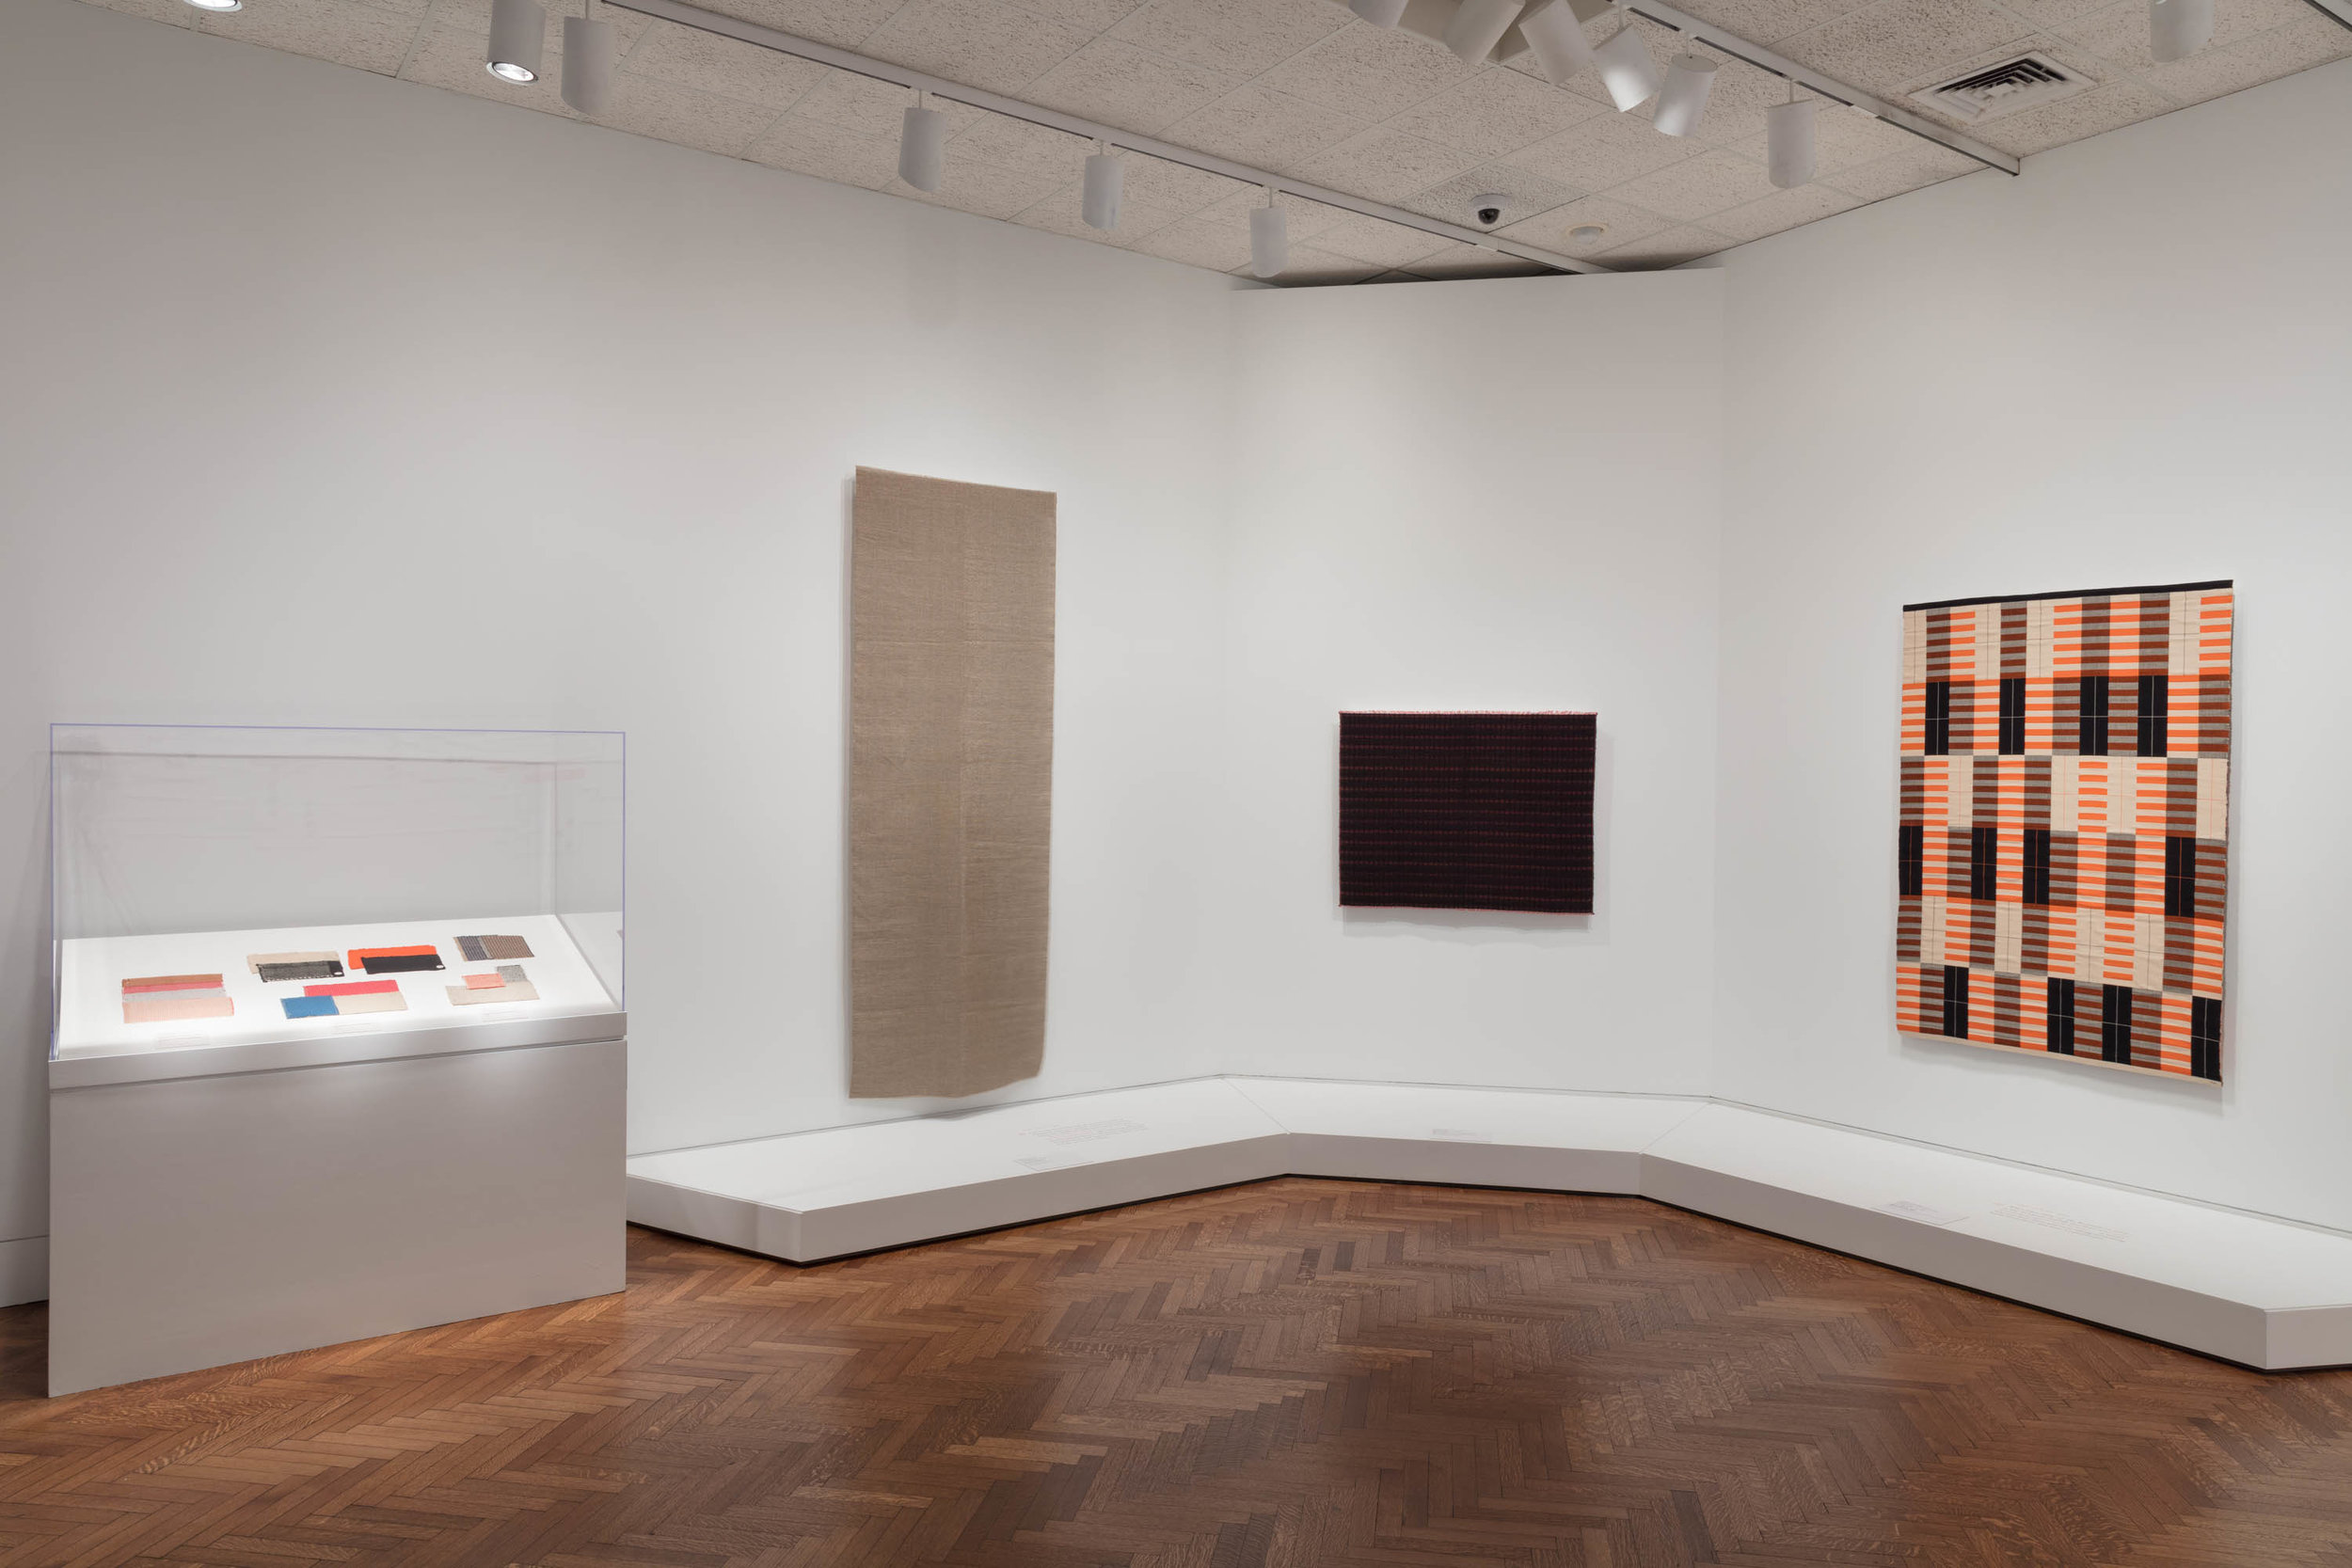 Elizabeth F. Cheney and Agnes Allerton Textile Galleries, The Art Institute of Chicago, 2019.